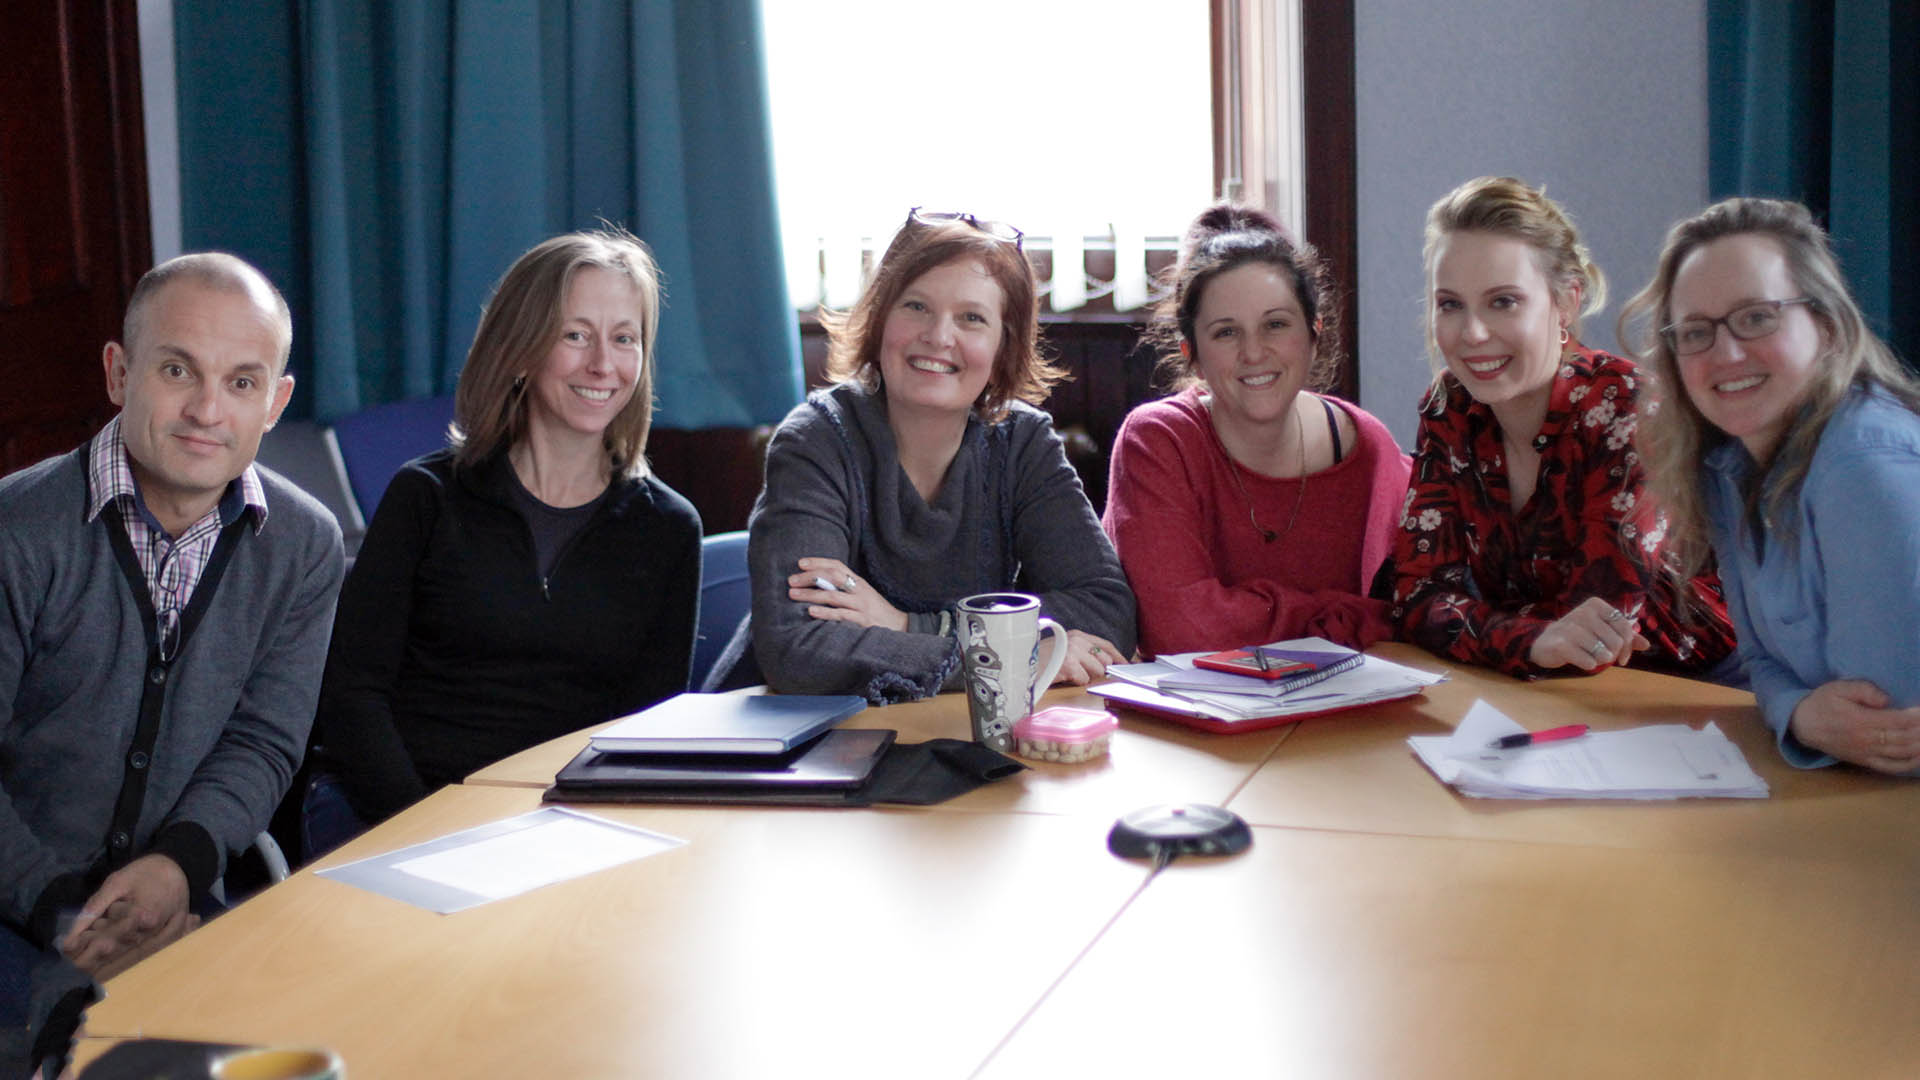 members of the Glasgow End of Life Studies Group during a Reading and Writing Death workshop in Dumfries, Scotland